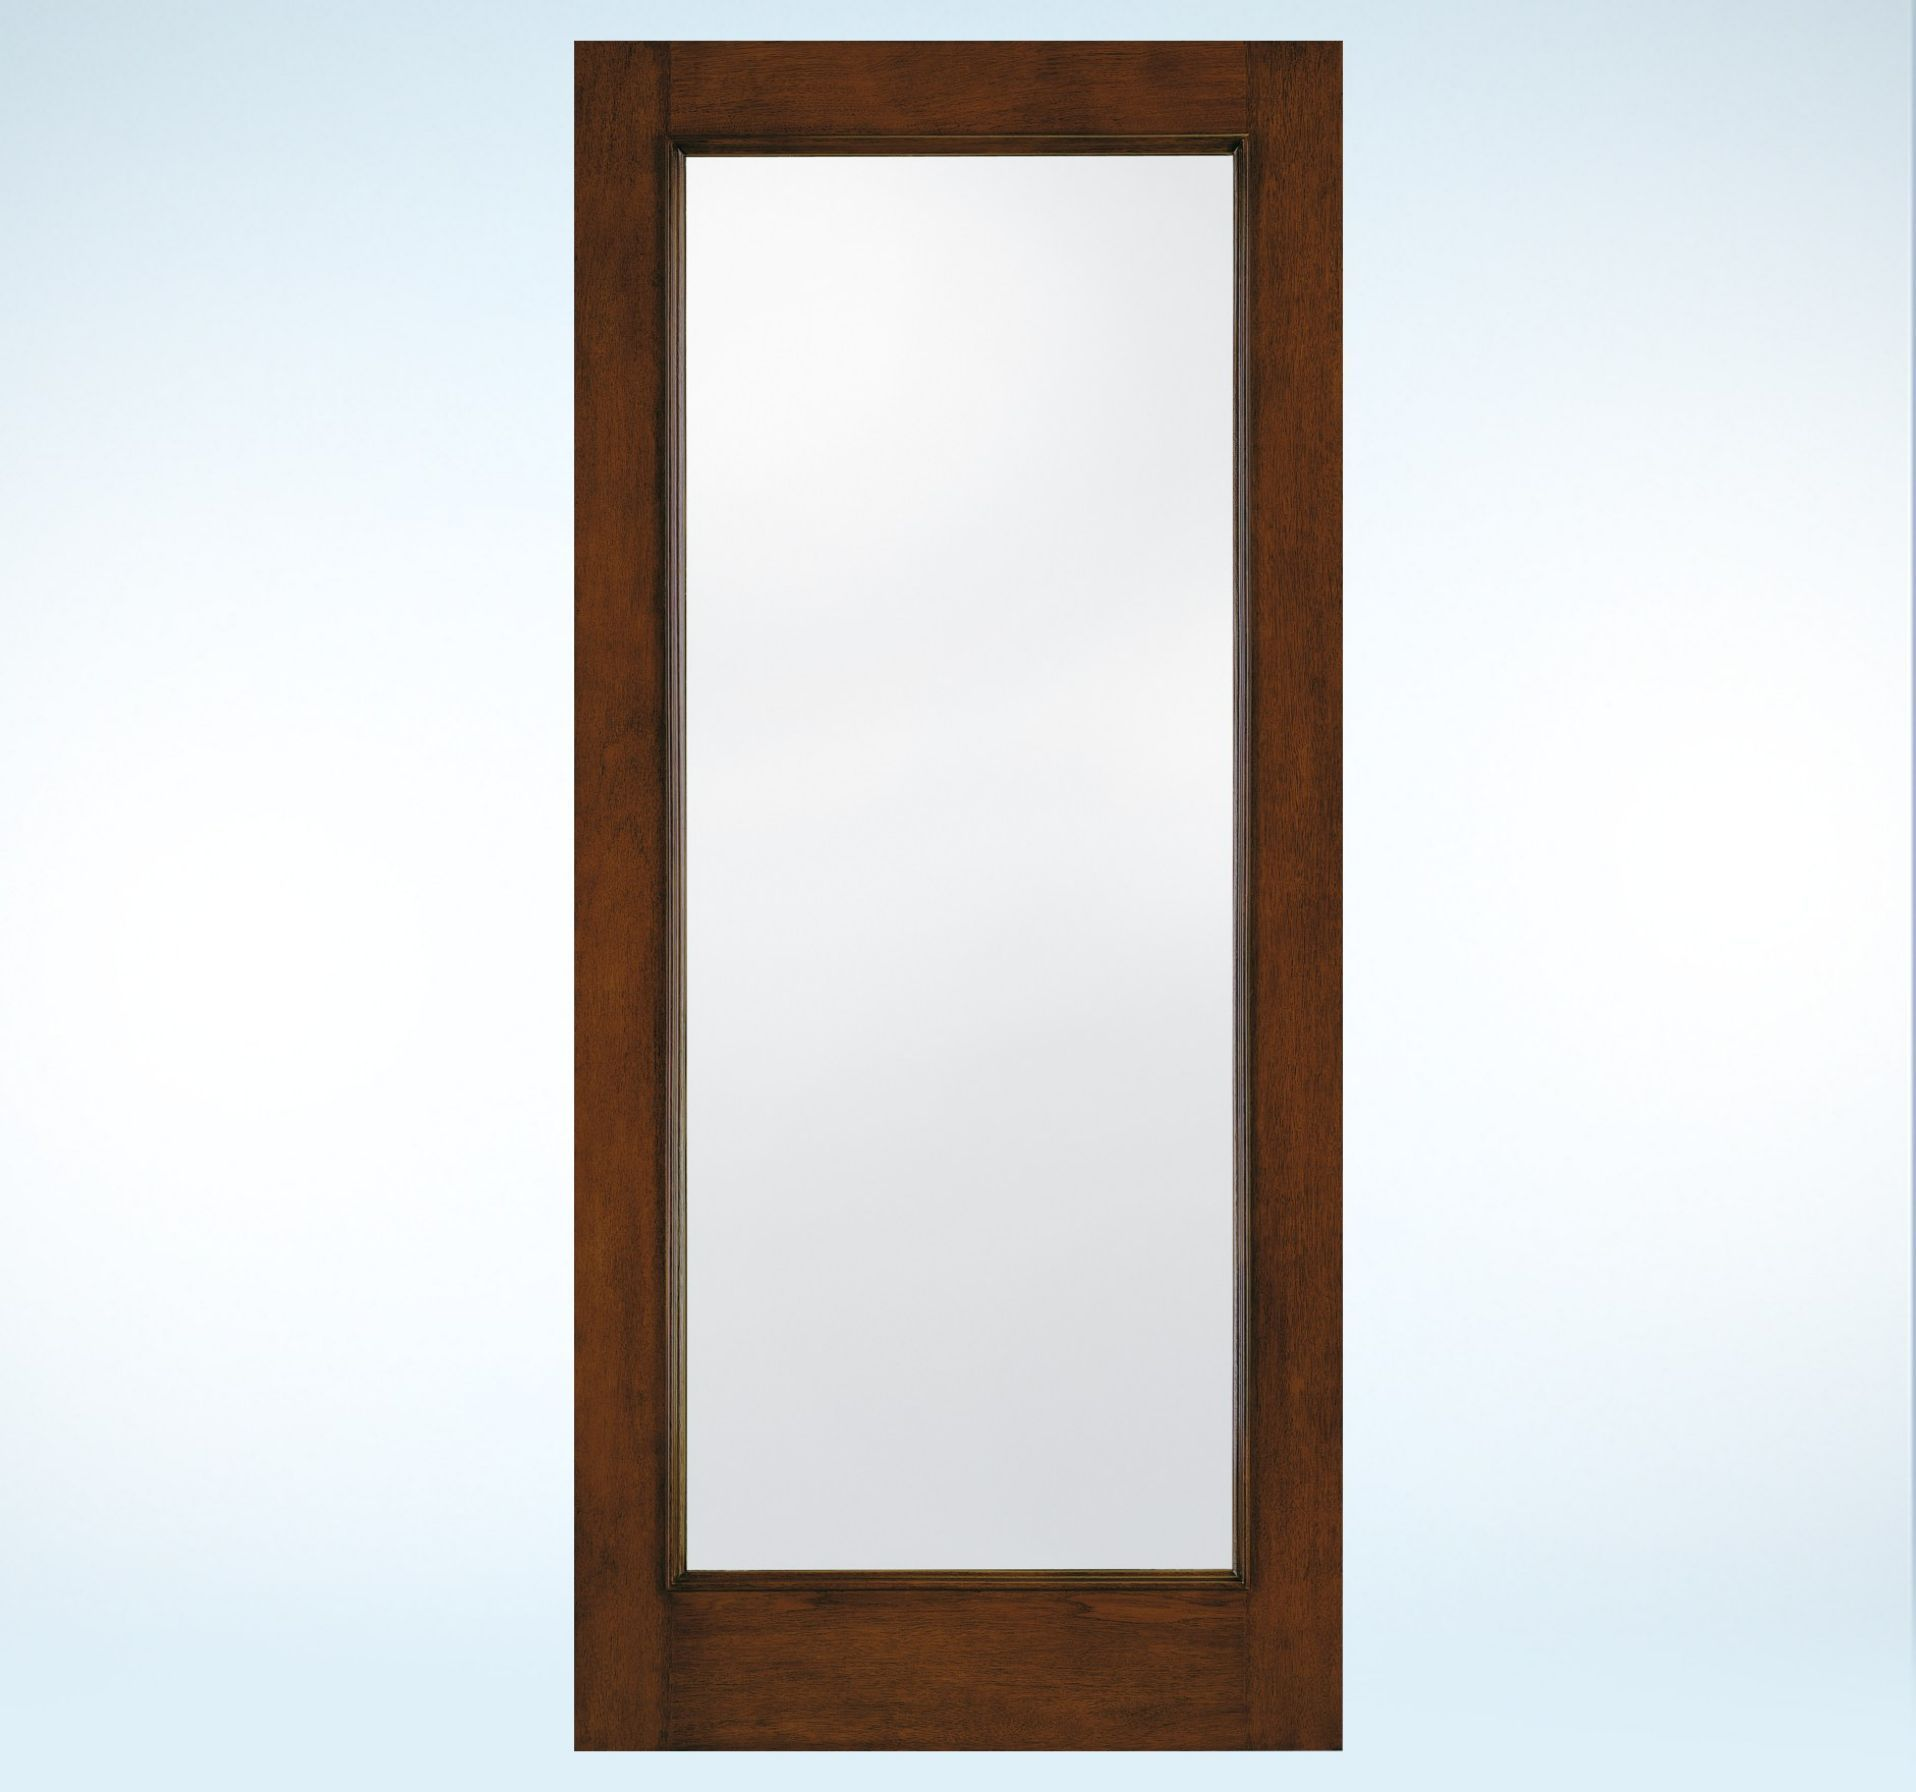 Aurora Custom Fiberglass Jeld Wen Doors Windows Energy Efficient Door Glass Panels Jeld Wen Doors